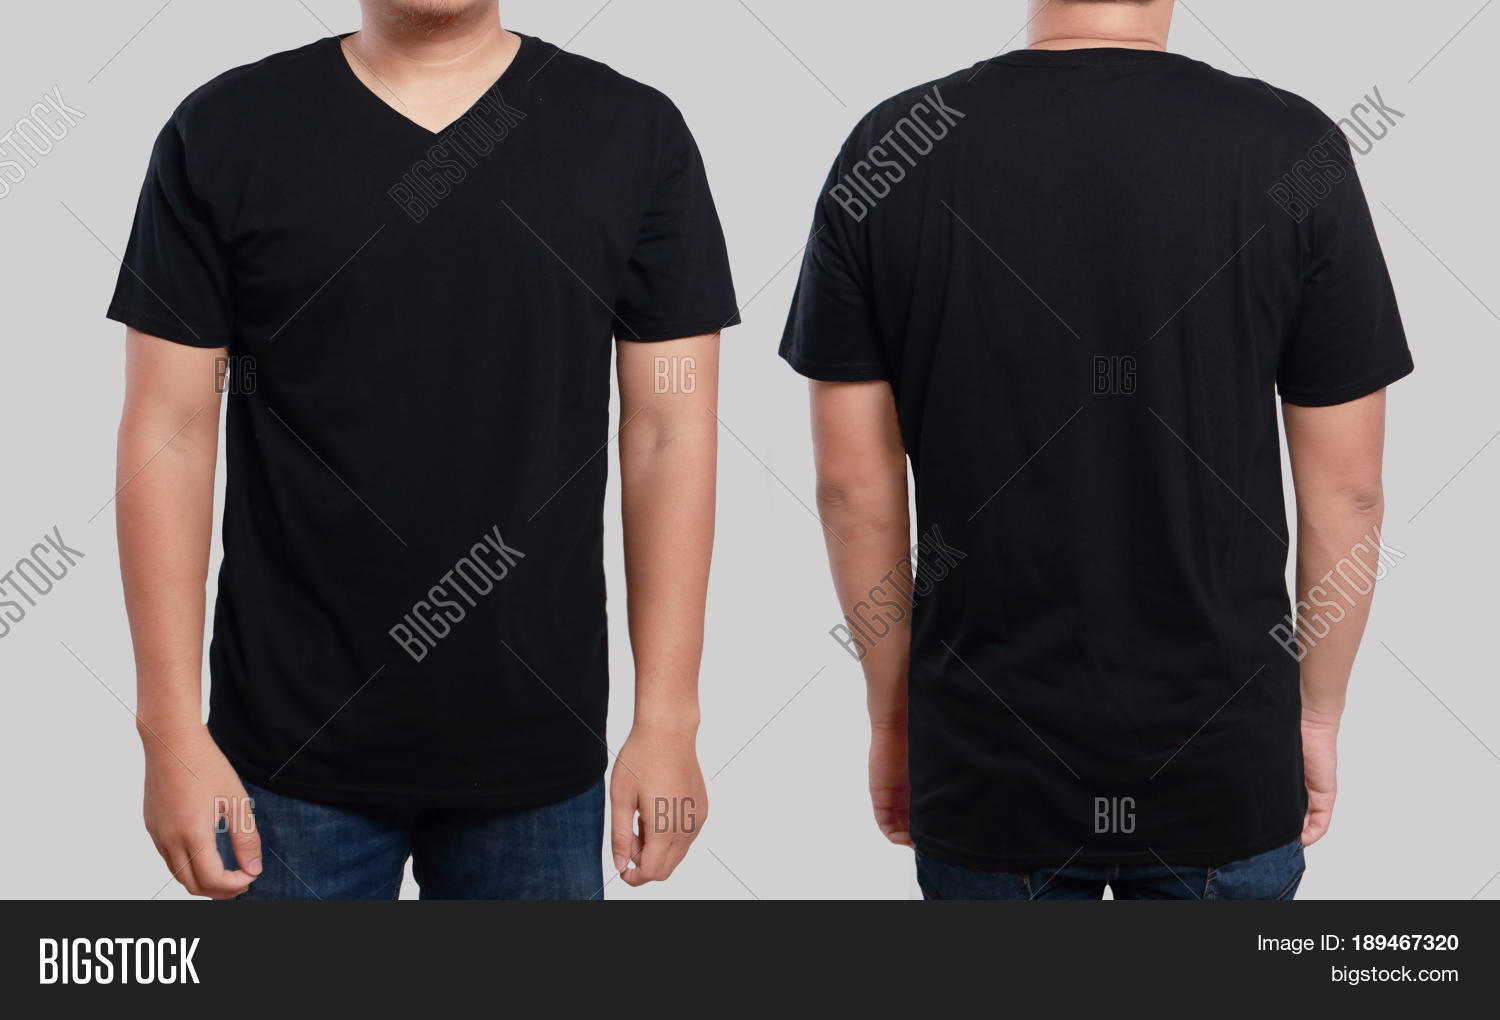 Blank black t shirt front and back - Black T Shirt Mock Up Front And Back View Isolated Male Model Wear Plain